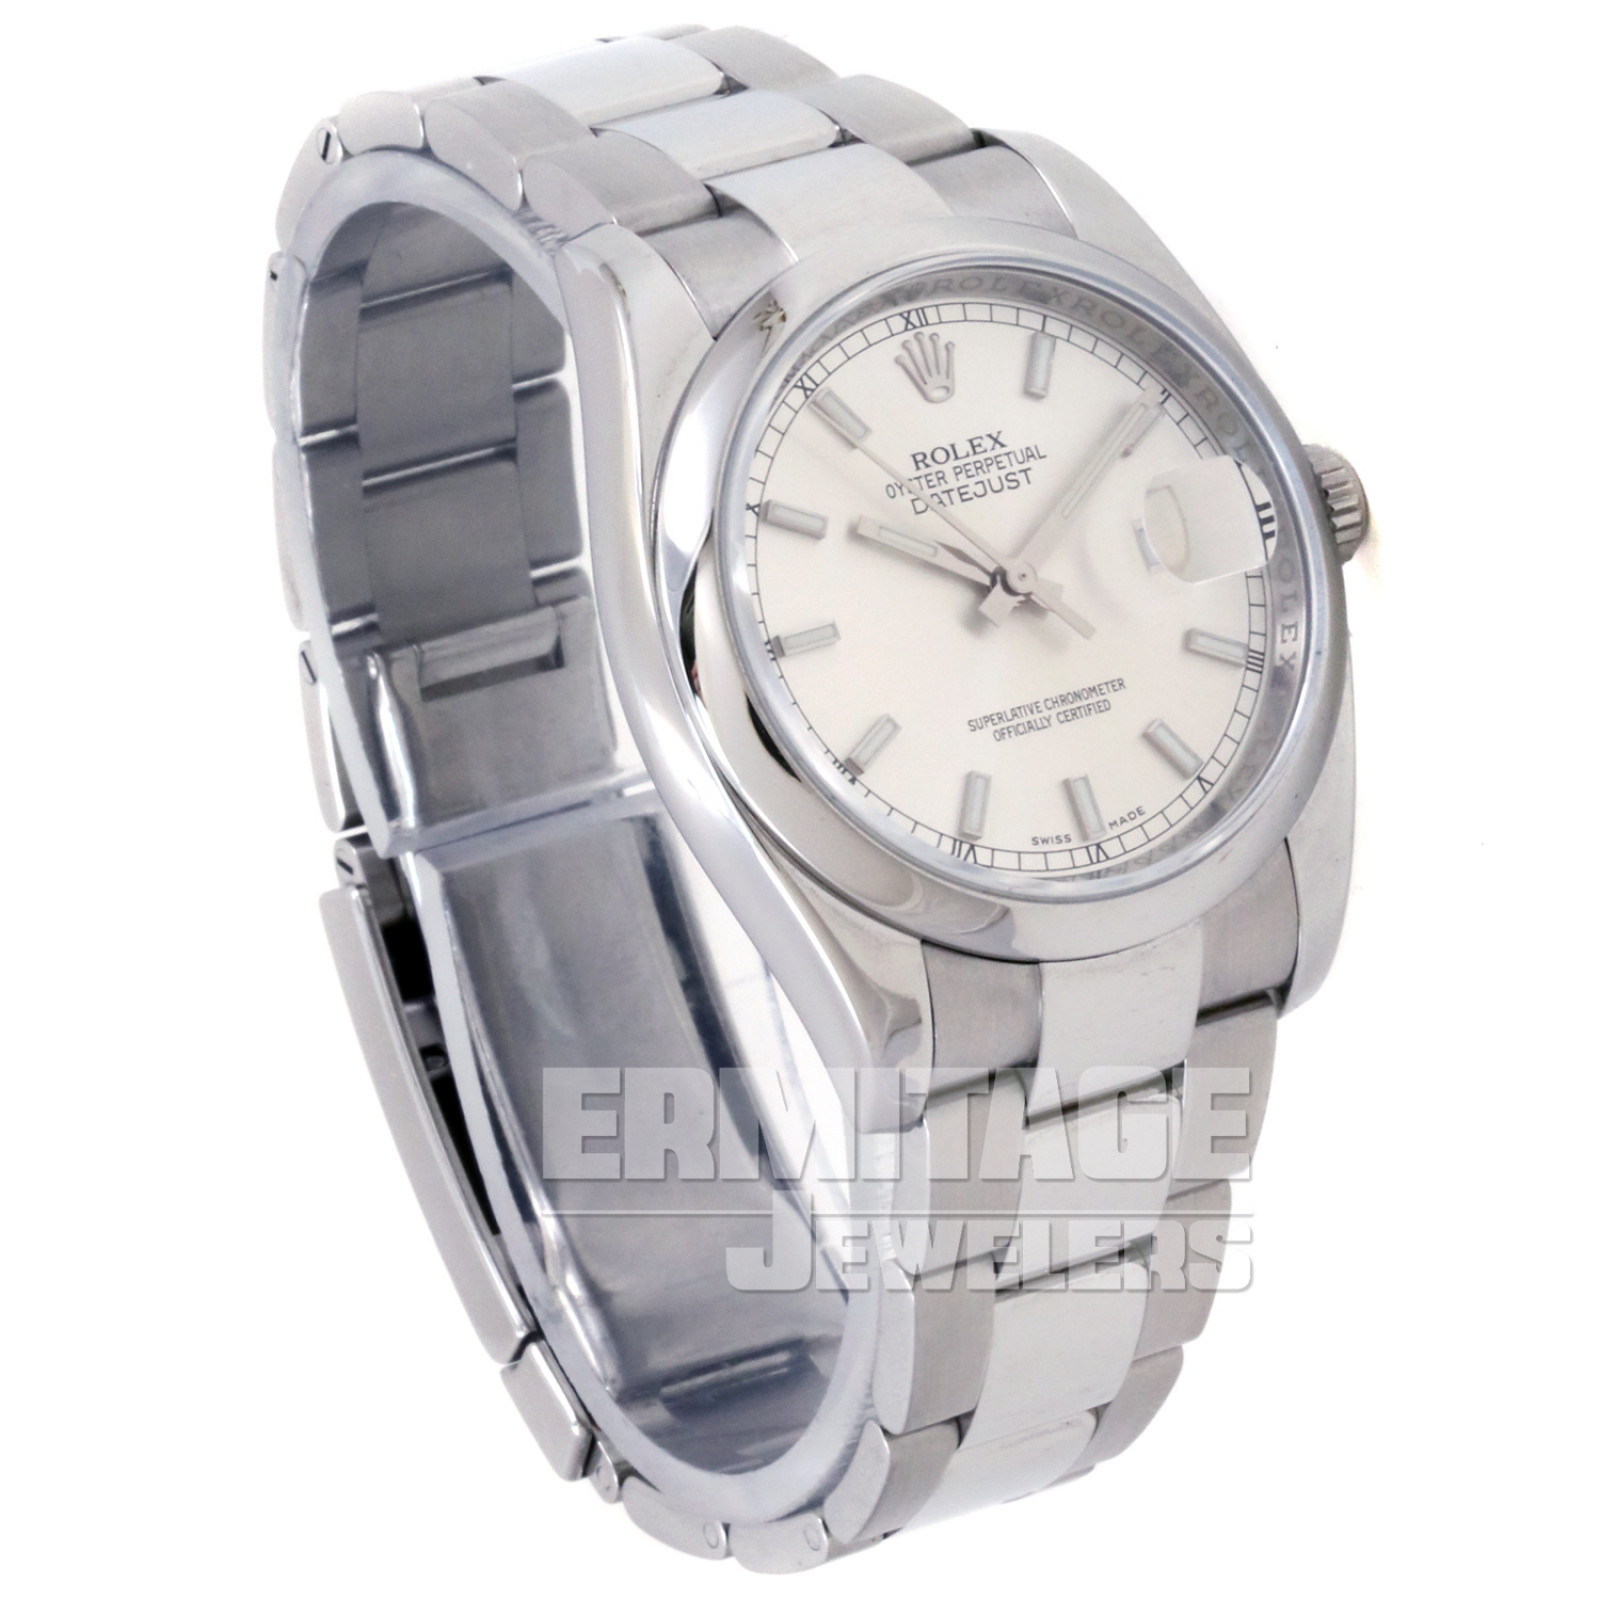 Rolex Datejust 116200 with Steel Dial